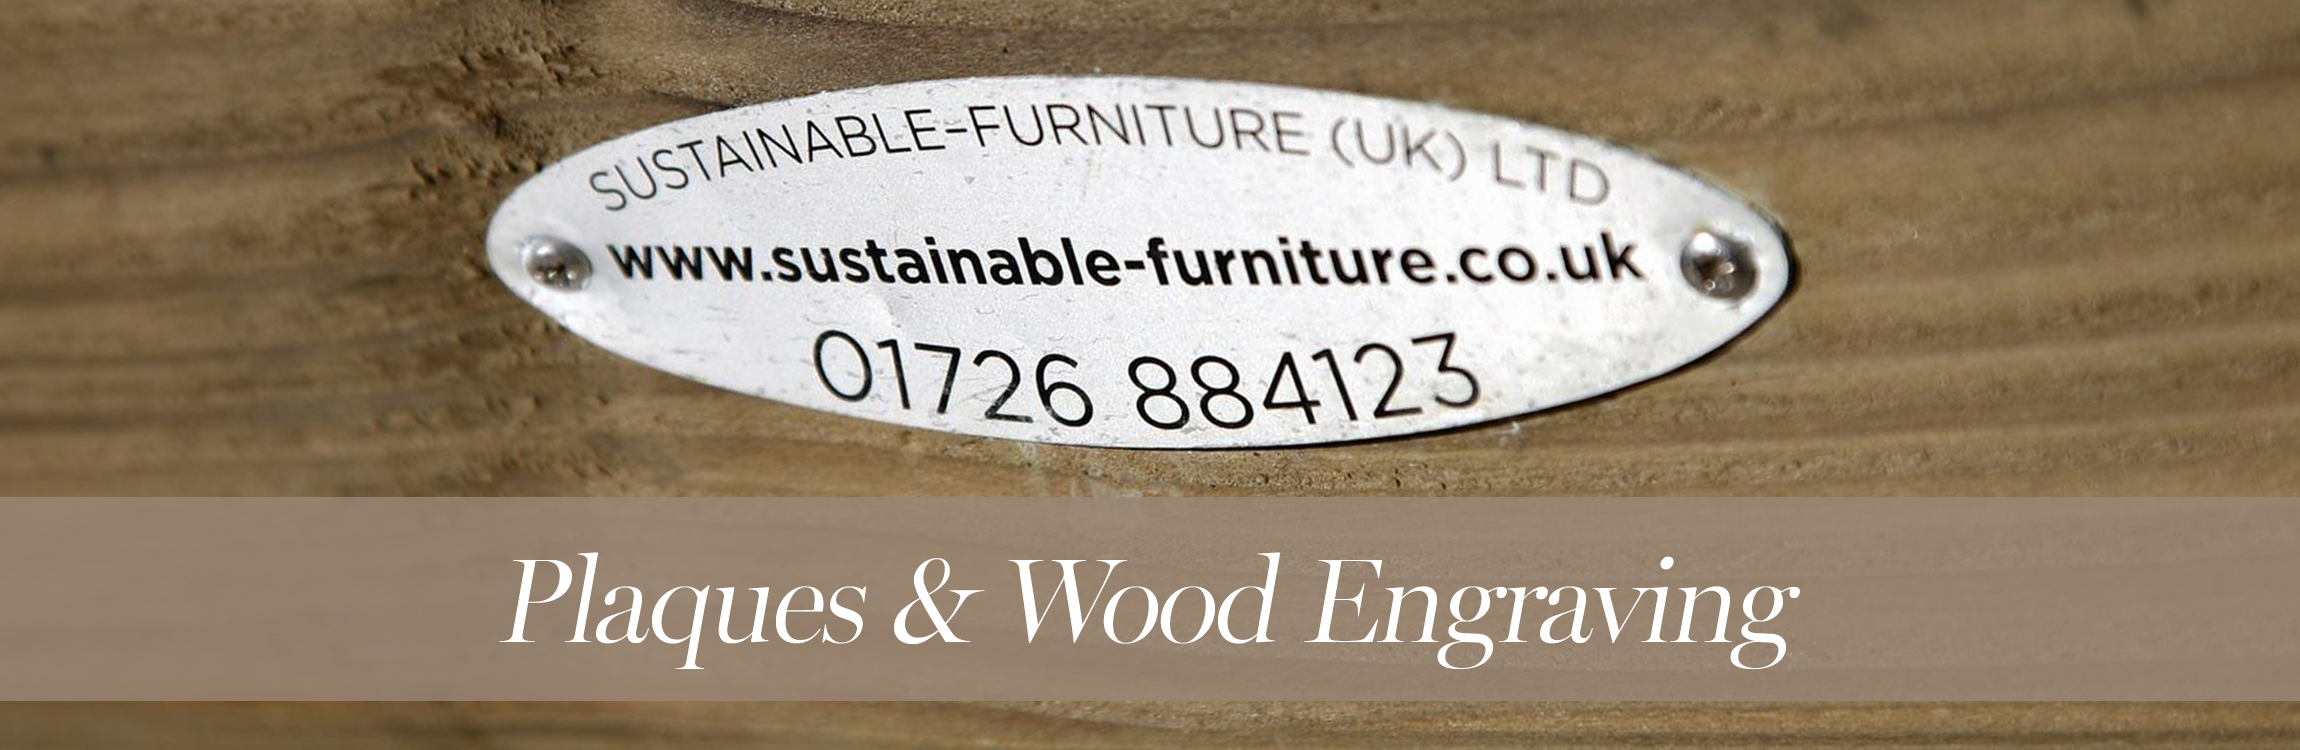 Plaques & Wood Engraving